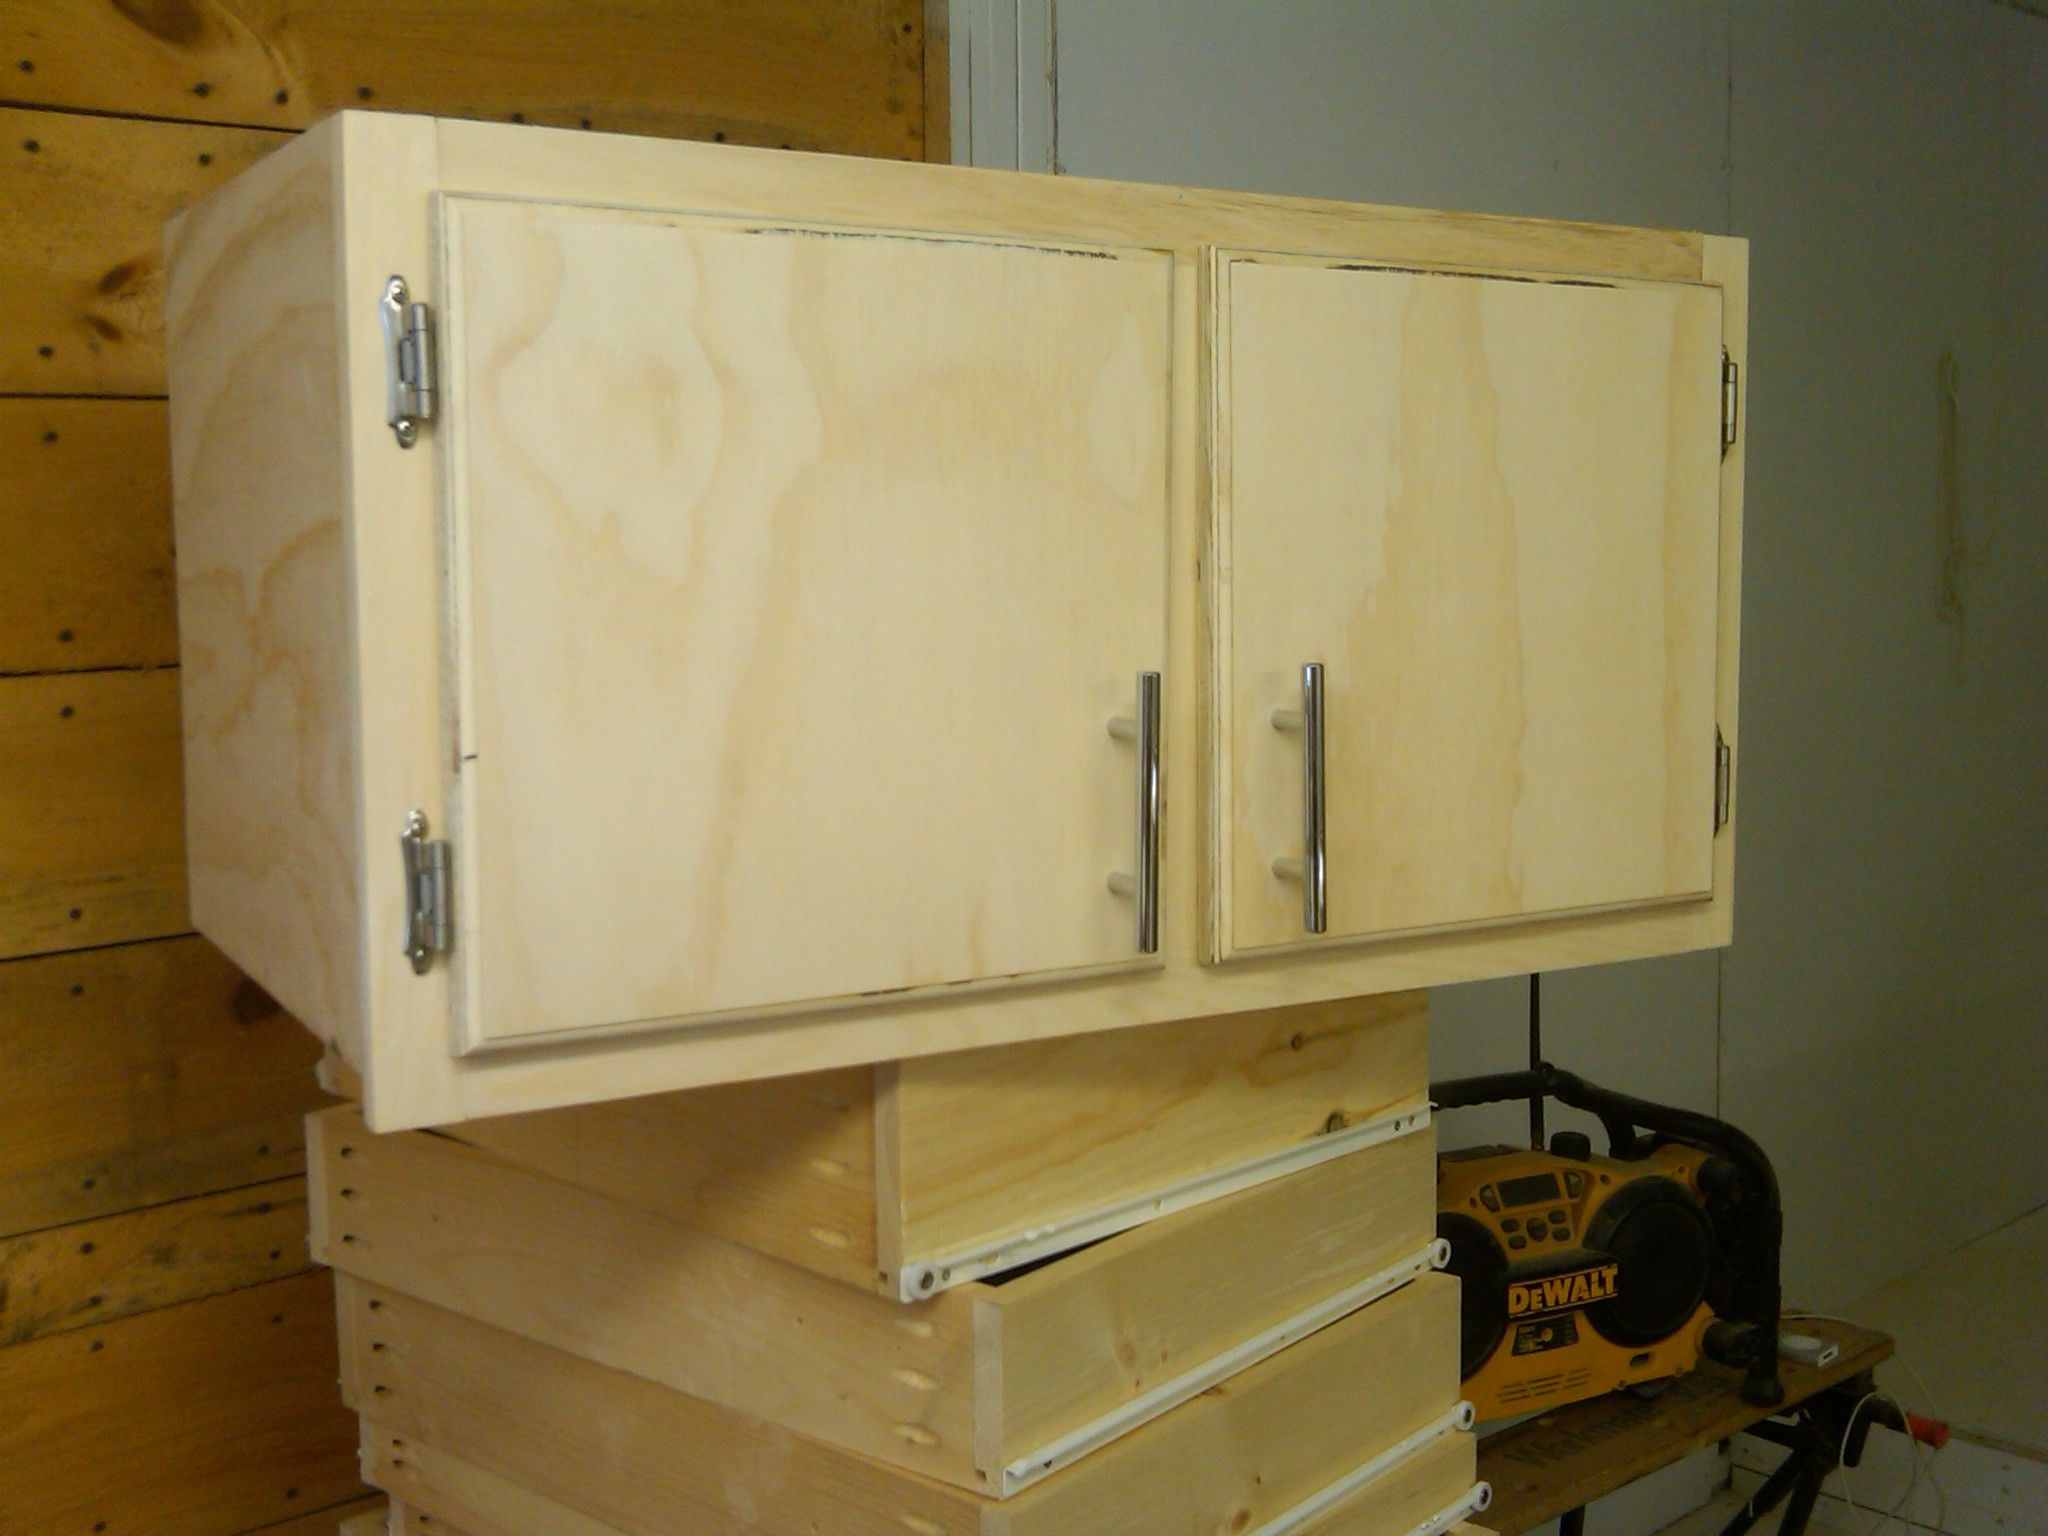 New cabinets for my workshop 39 s tool crib kreg jig for Build kitchen cabinets with kreg